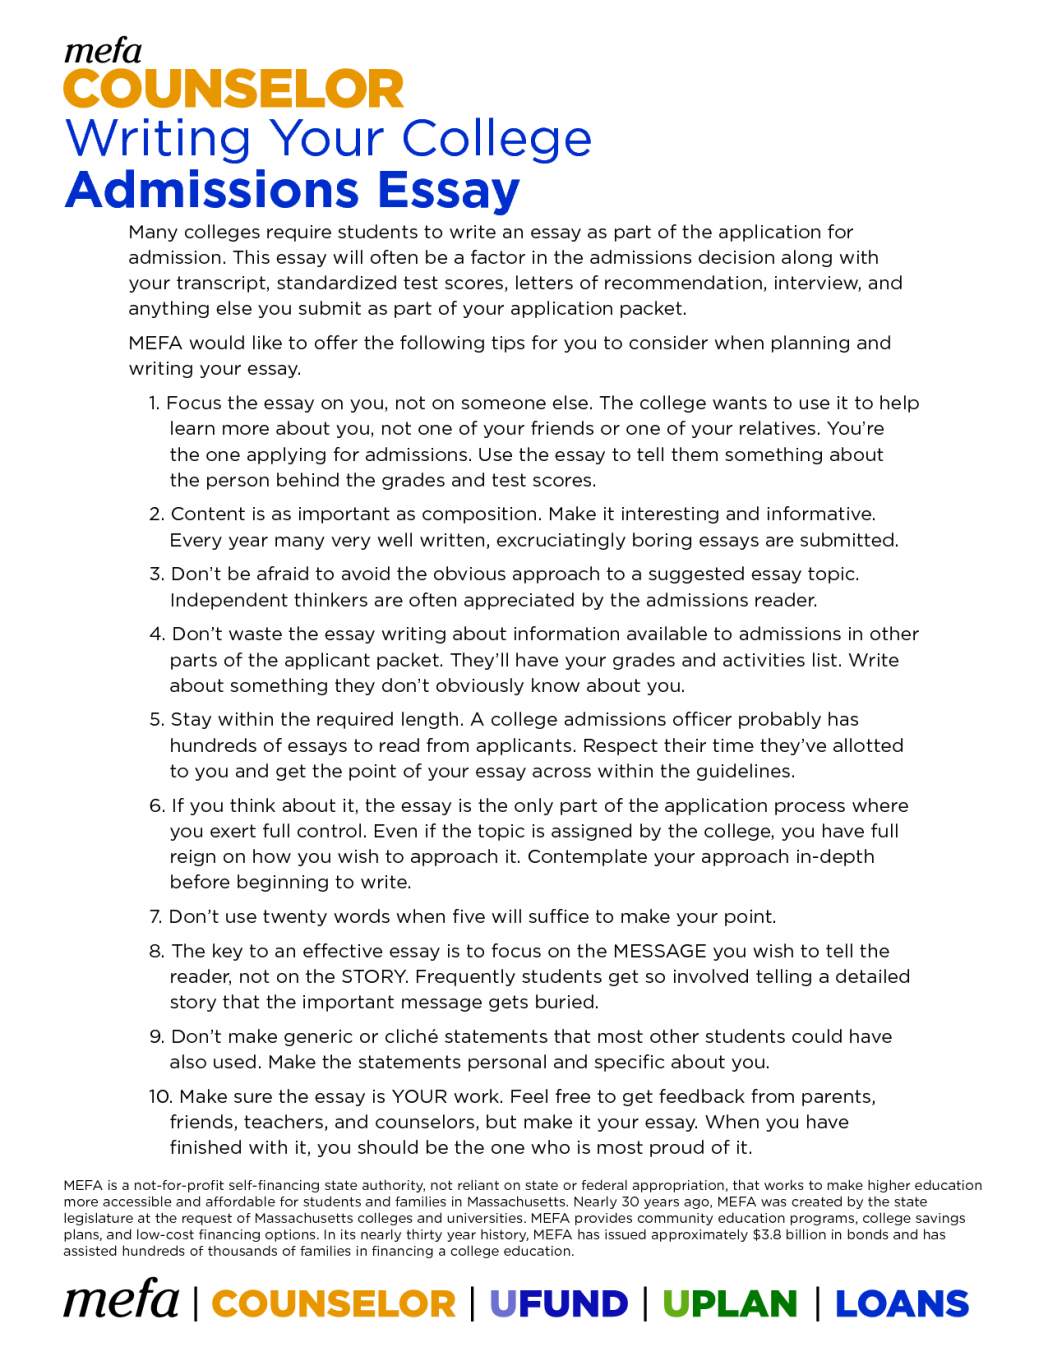 003 Essay Example How Long Should College Essays Writing Help High School Many Paragraphs Application Wuaom Pages Words What About Formatted In Mla Format Fascinating Be On Apply Texas My Full